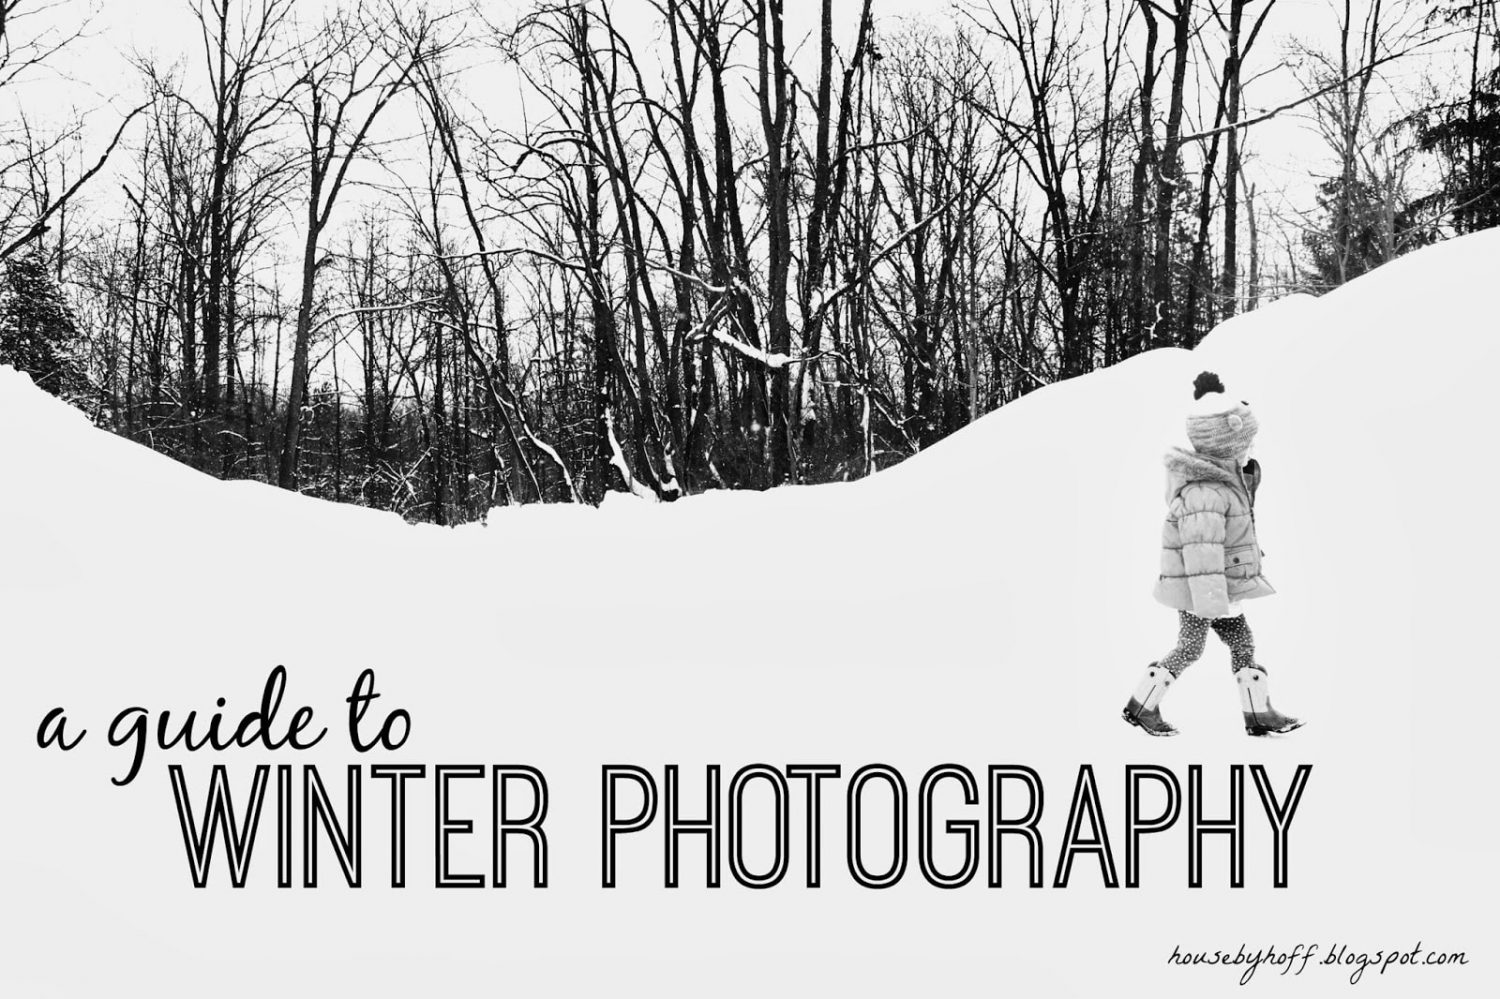 aguidetowinterphotography2